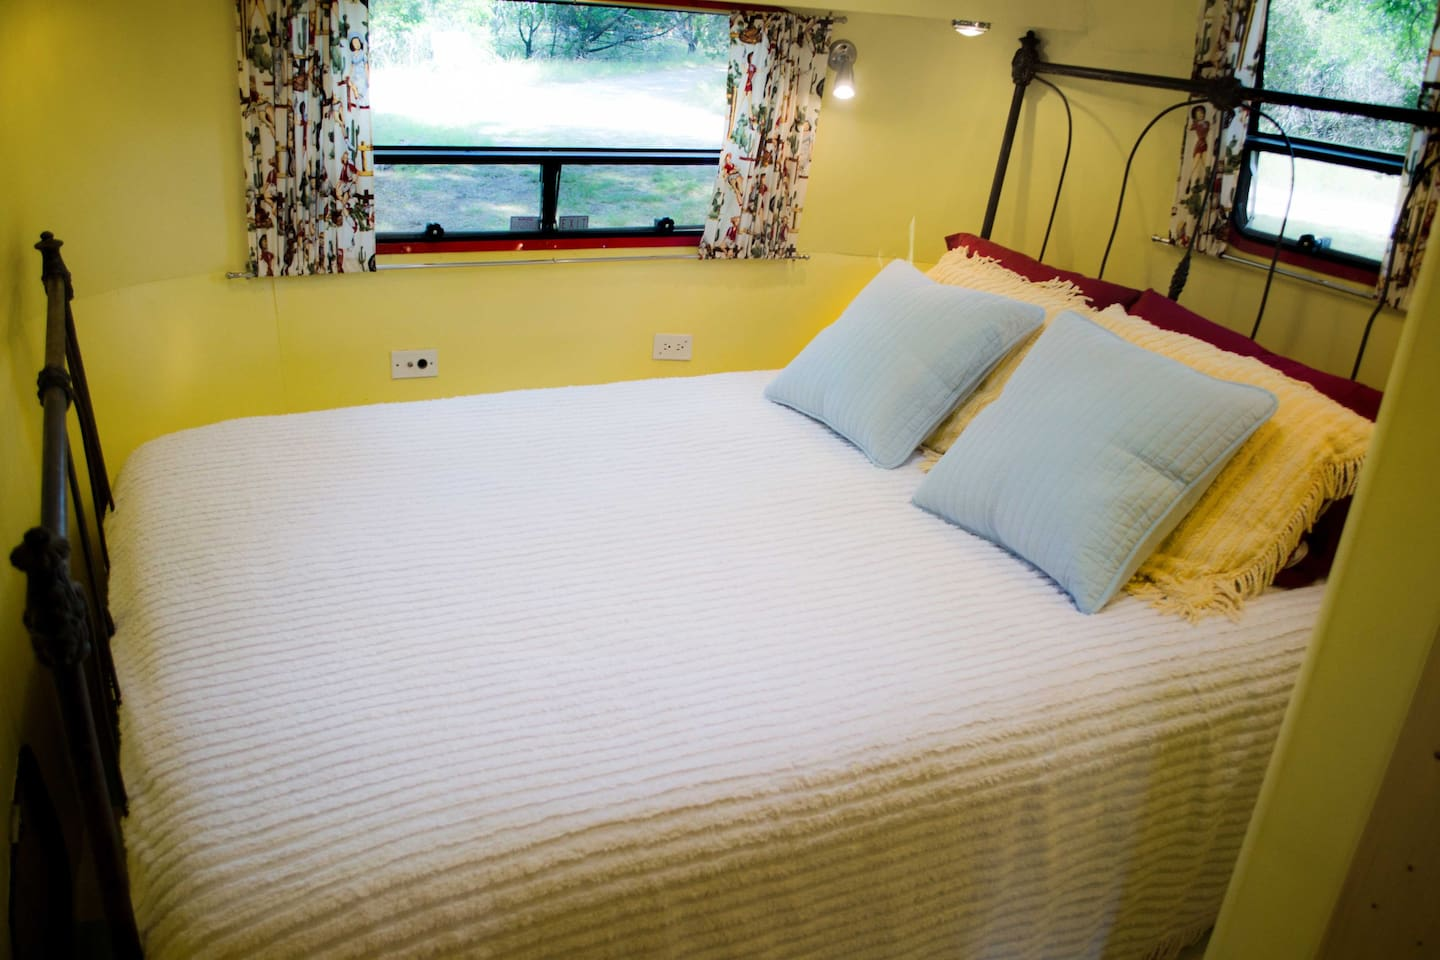 Queen size bed on an antique iron bed frame